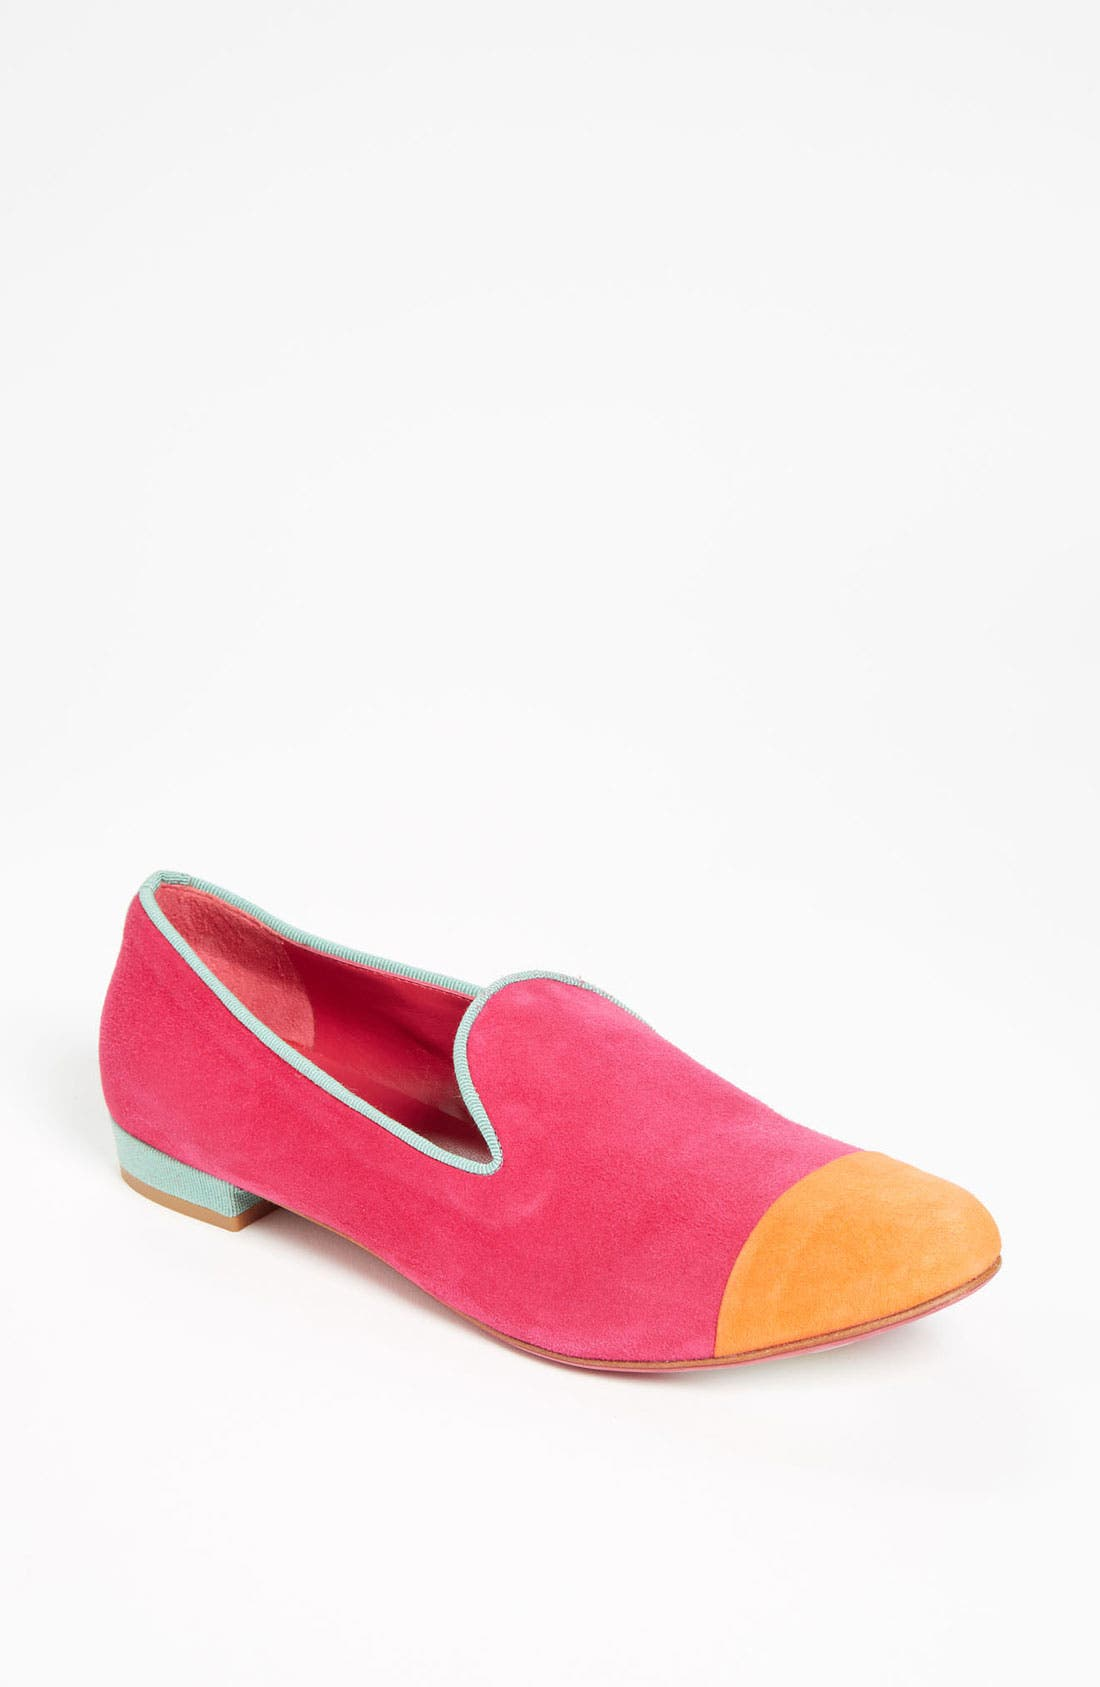 Alternate Image 1 Selected - Alberto Gozzi 'Jennifer 2' Slip-On